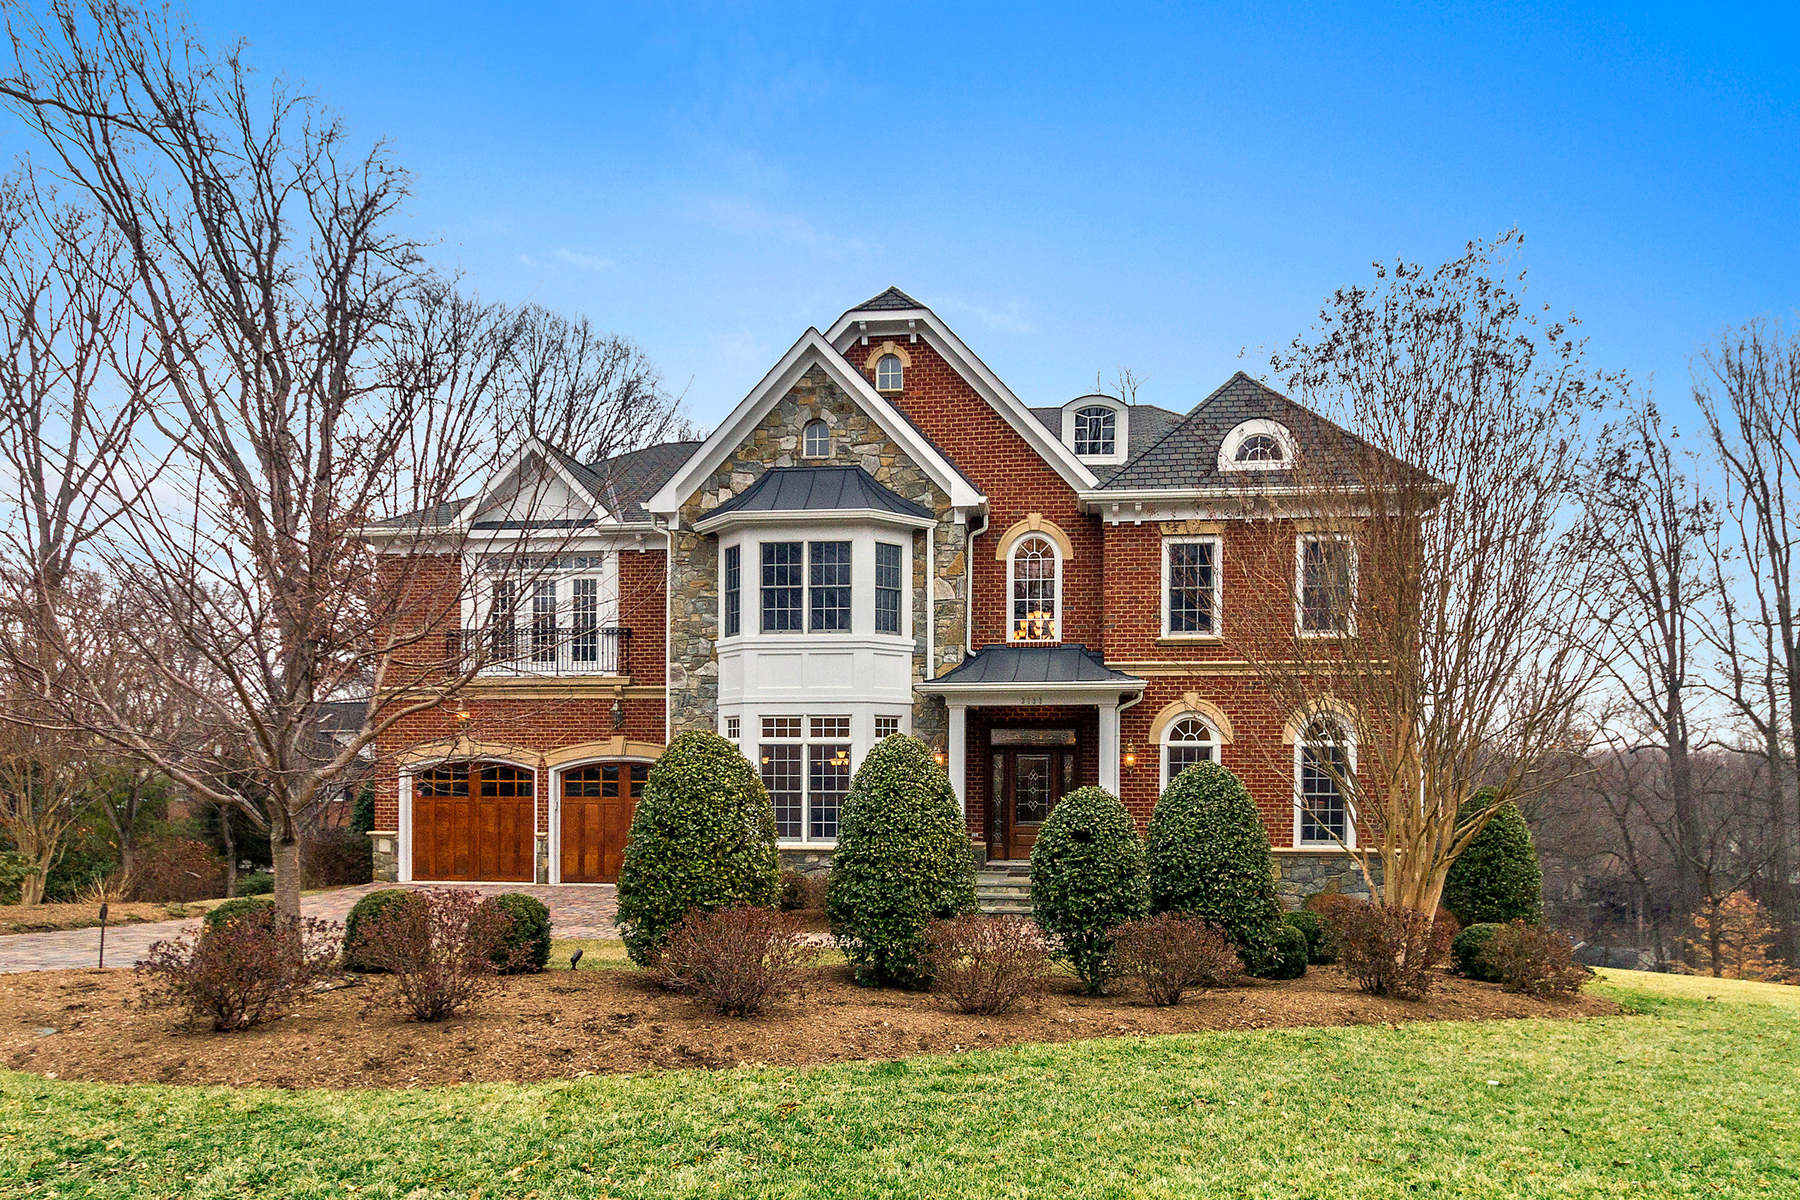 Single Family Home for Sale at Bellevue Forest 3133 Piedmont Street N Arlington, Virginia 22207 United States